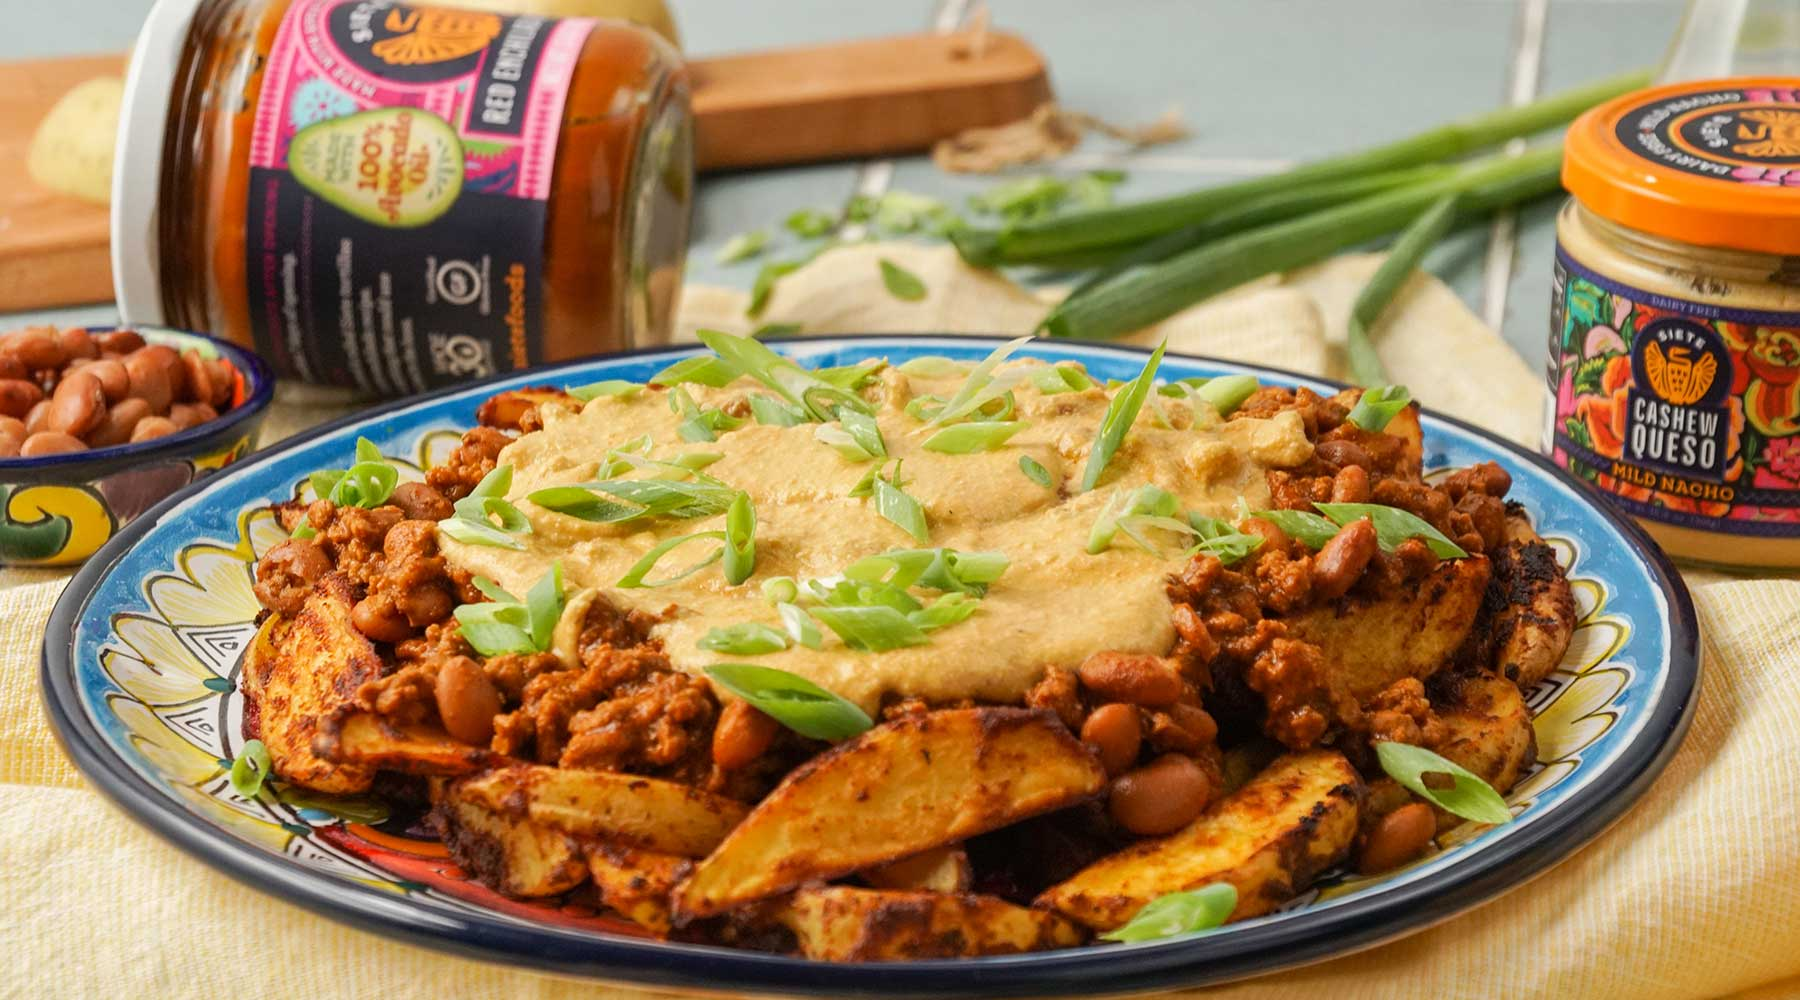 Chili Cheese Loaded Potatoes